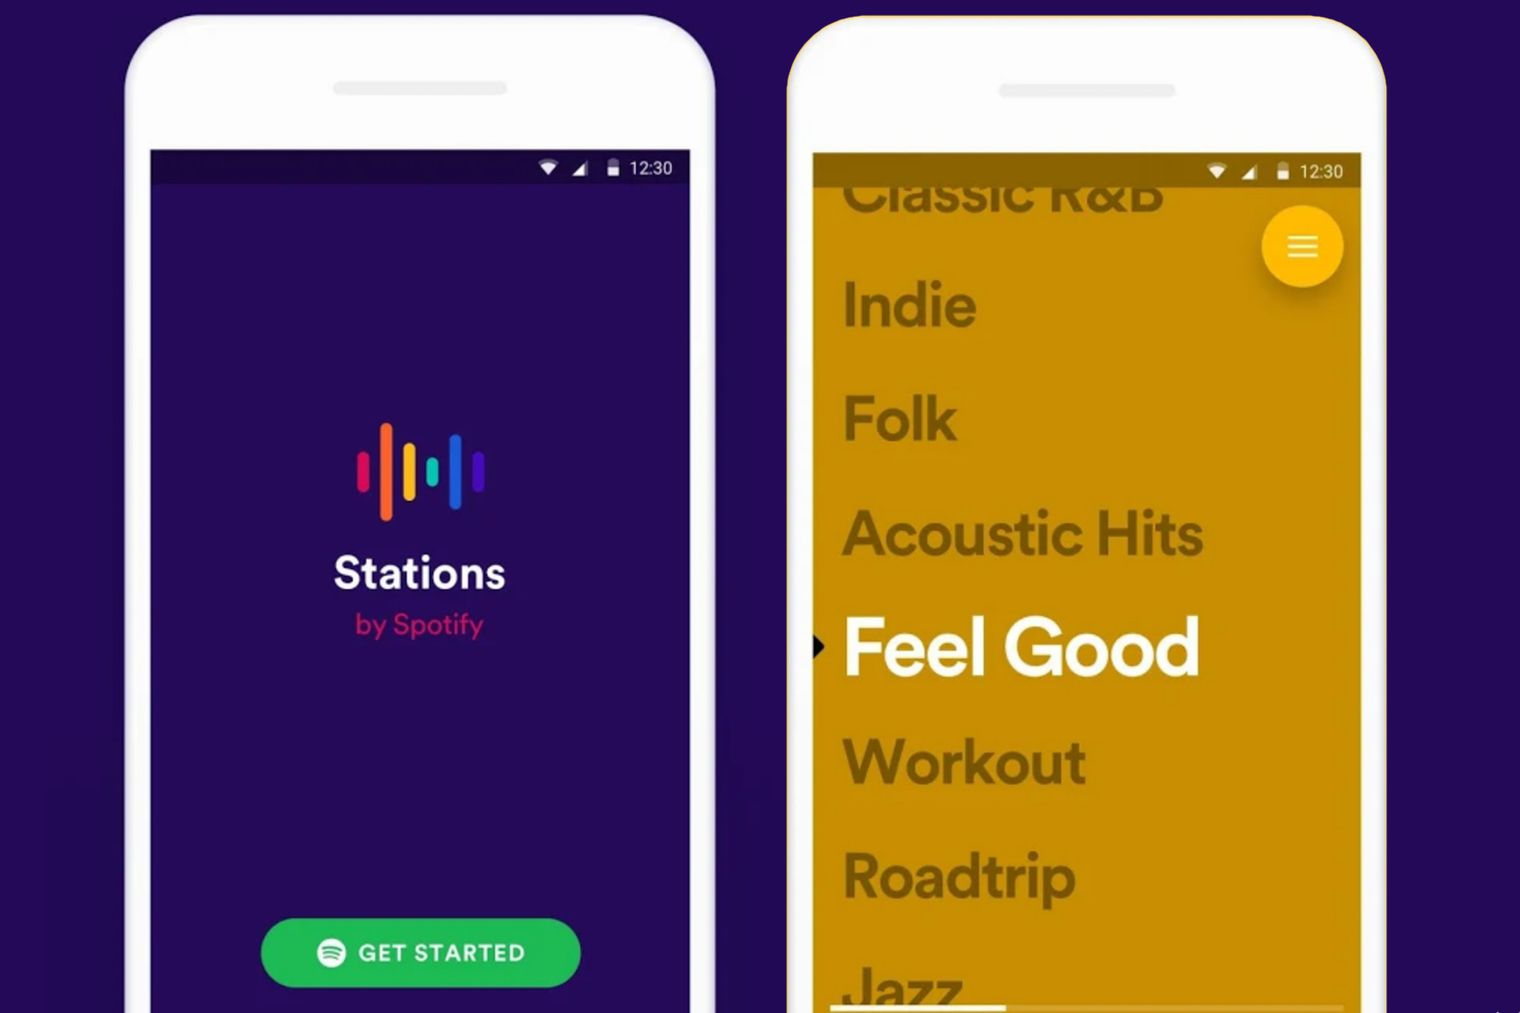 how to find recently played songs on spotify app